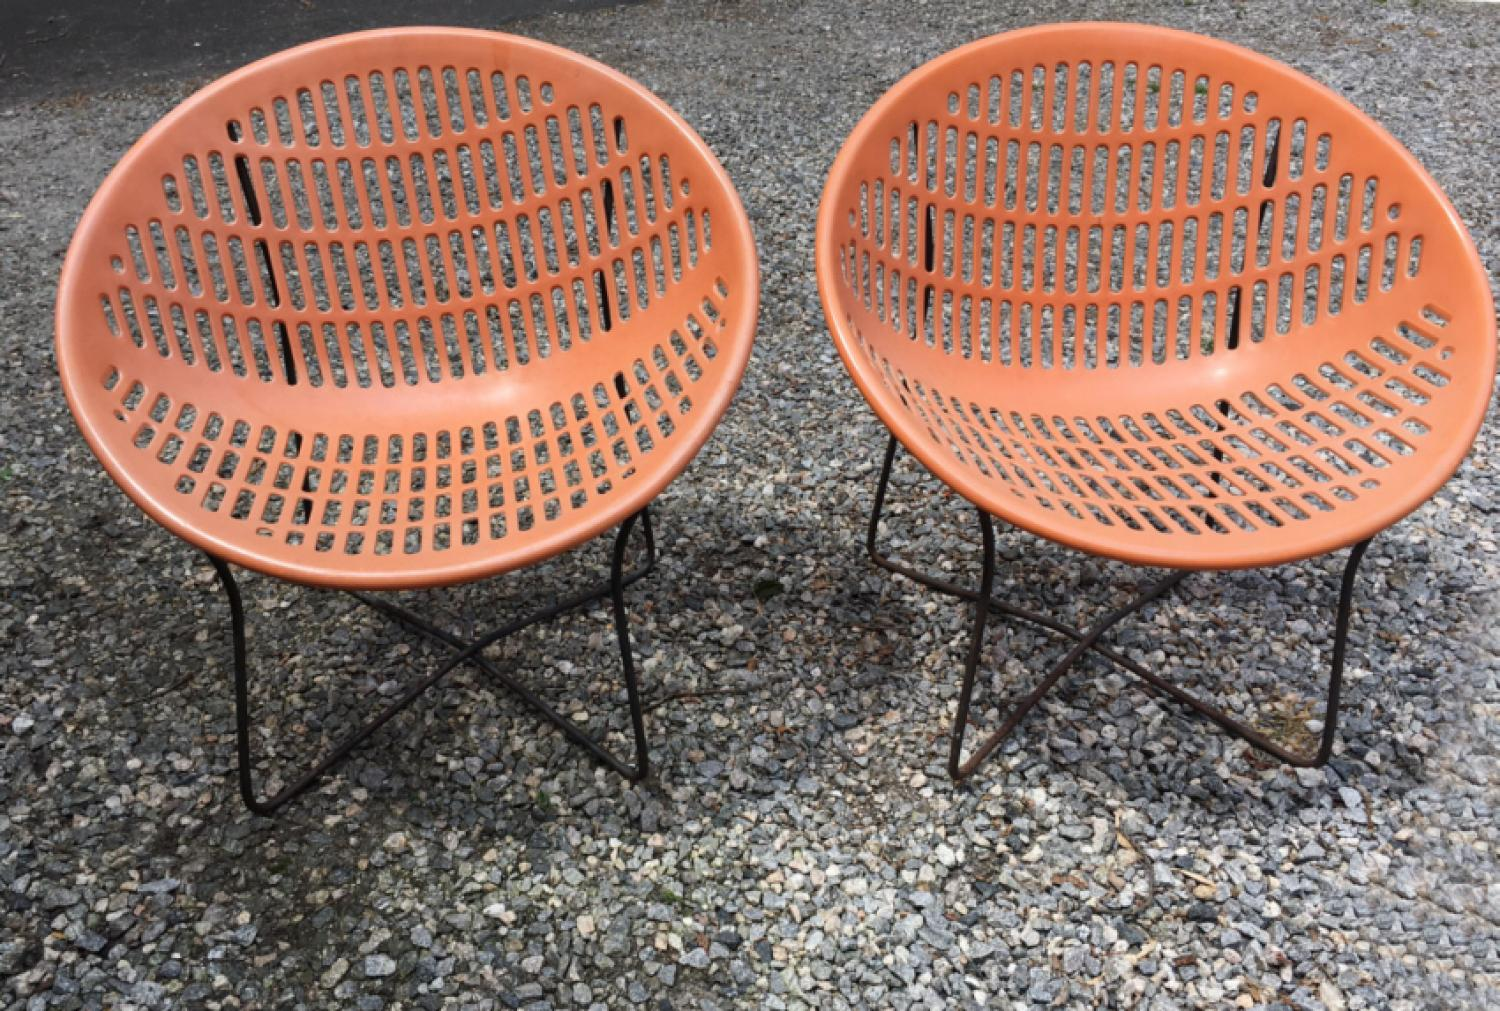 Mid century modern Solair chairs by Fabiano and Panzini